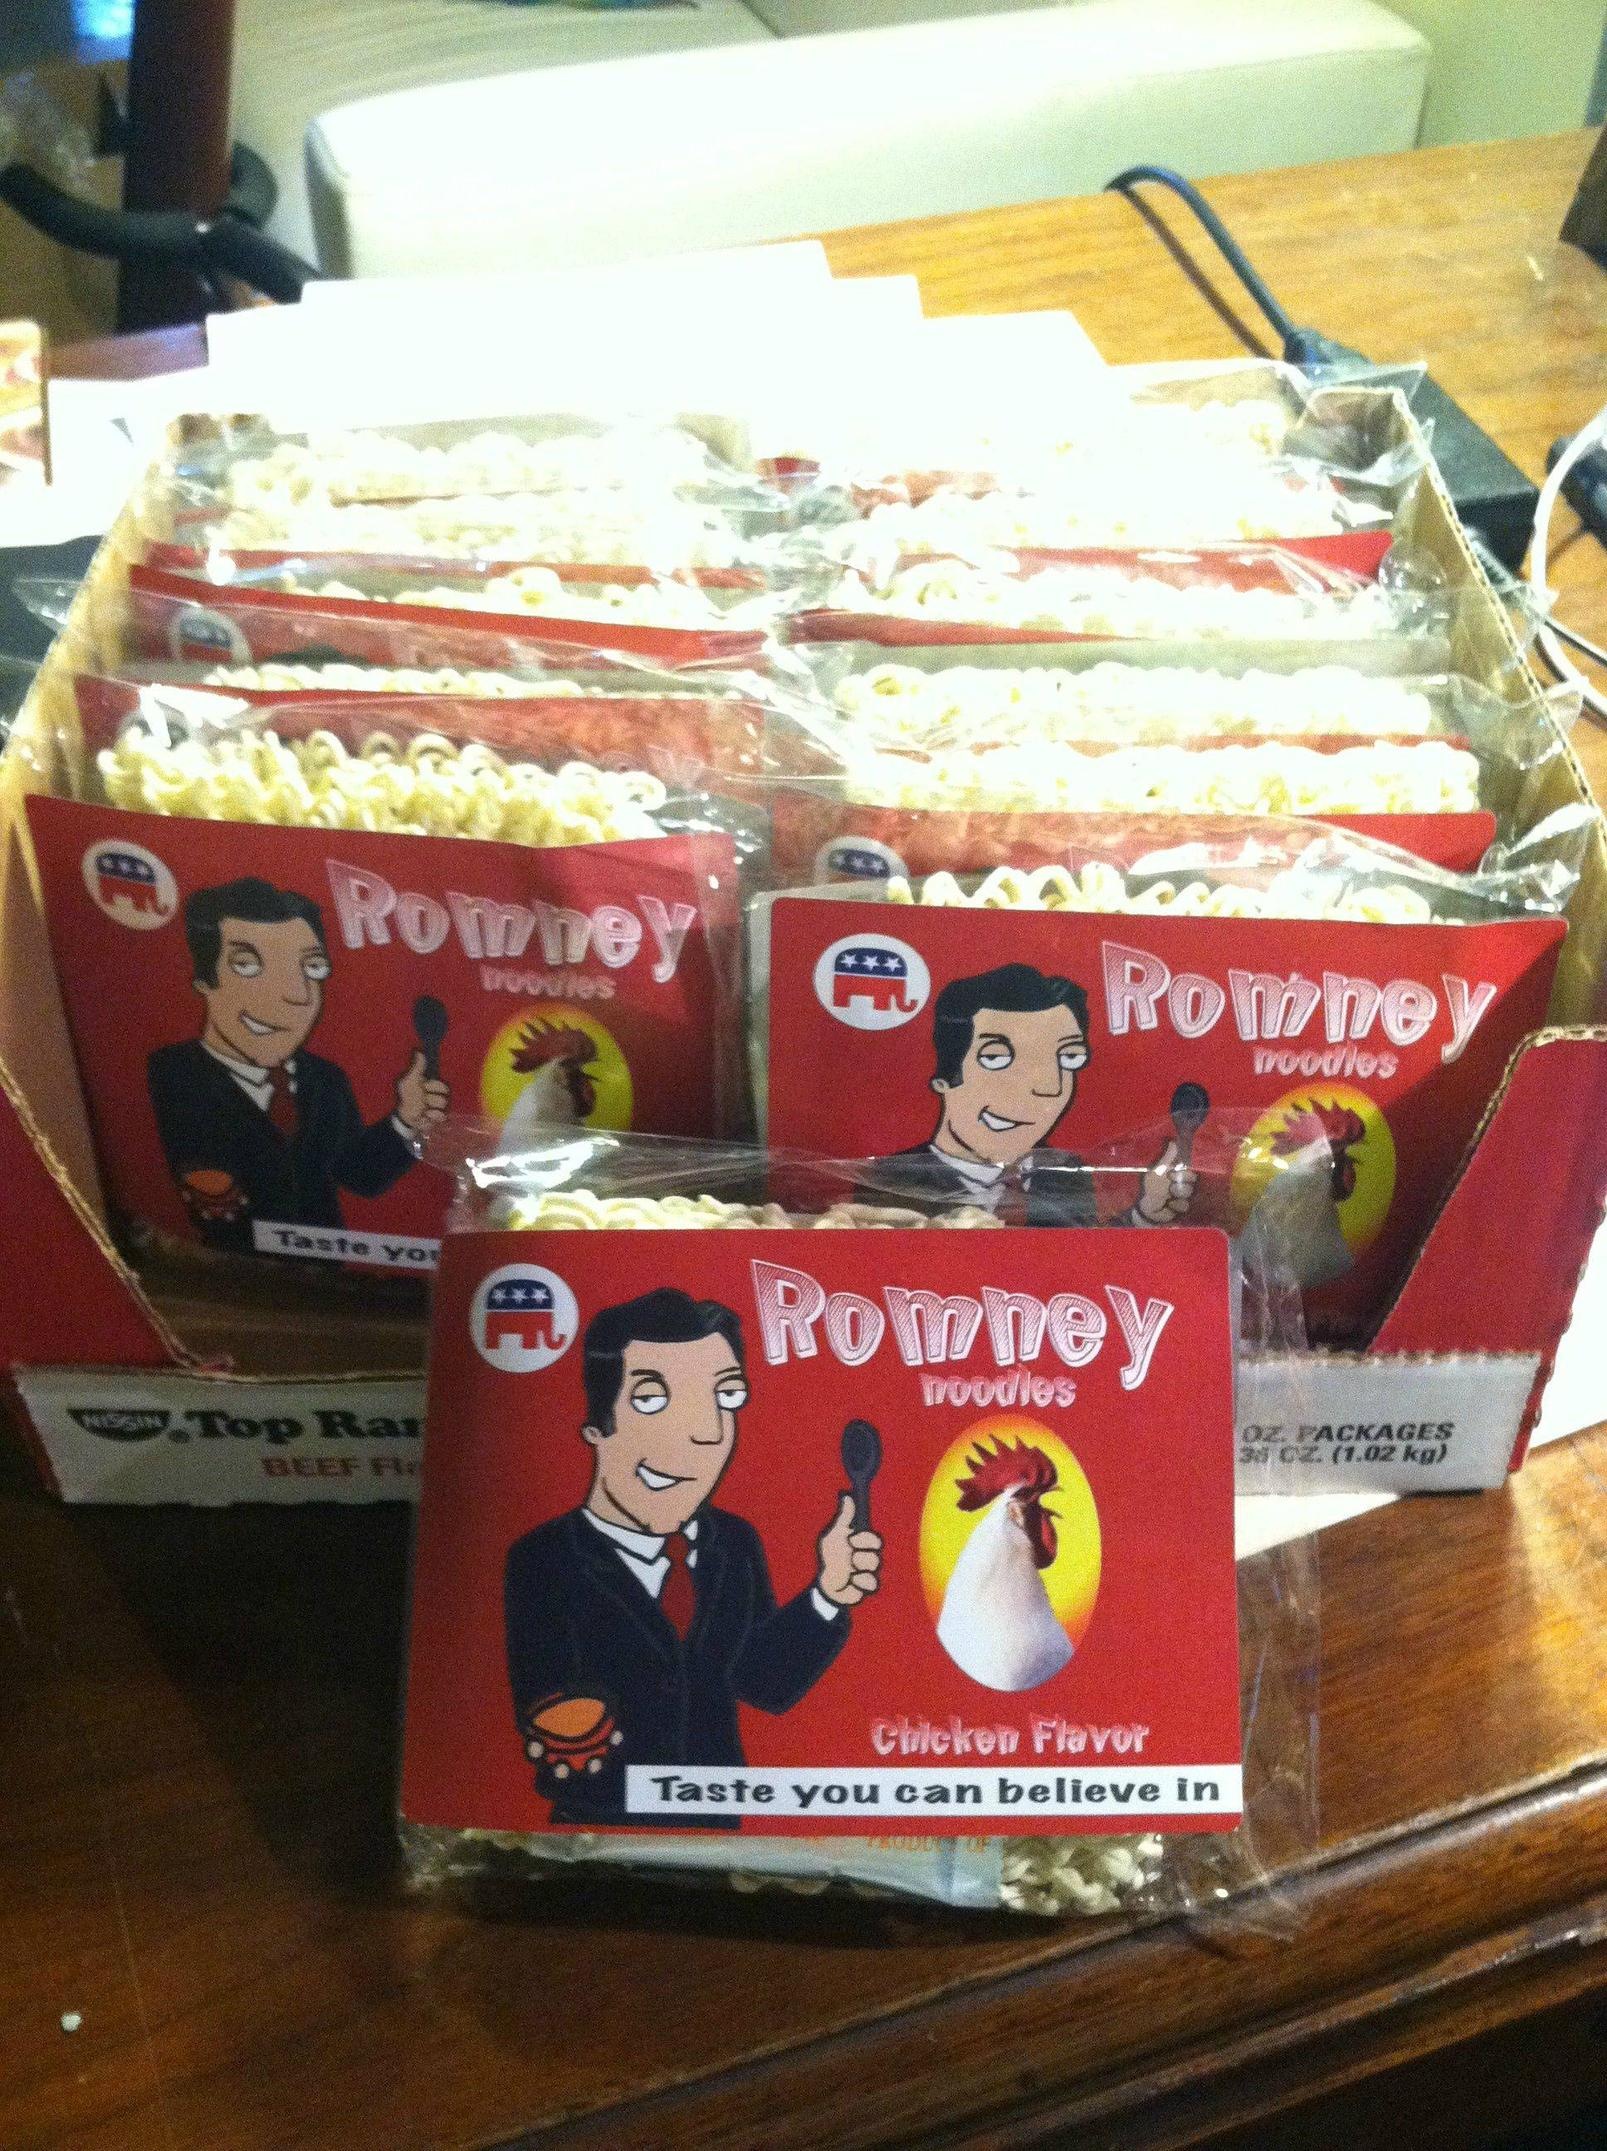 Romney endorses a food product no one in the Romney family has ever heard of.